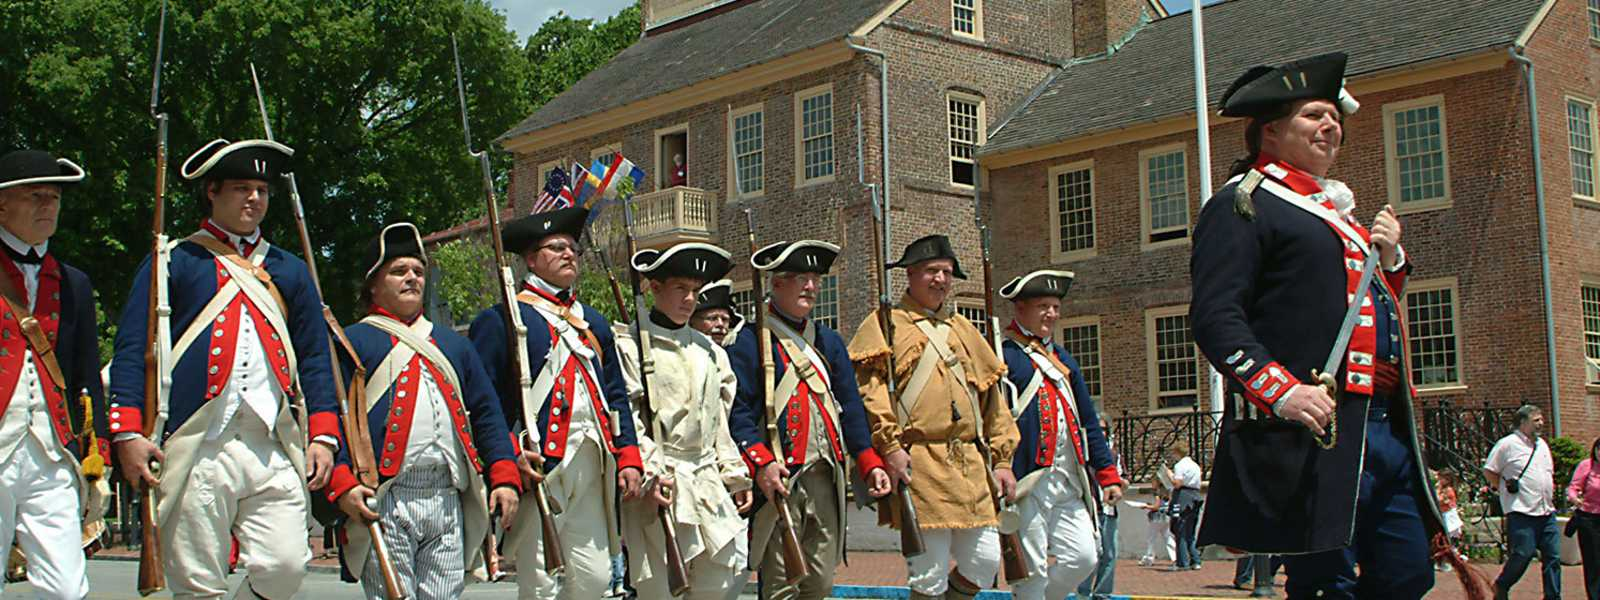 New Castle, Delaware Separation Day Parade